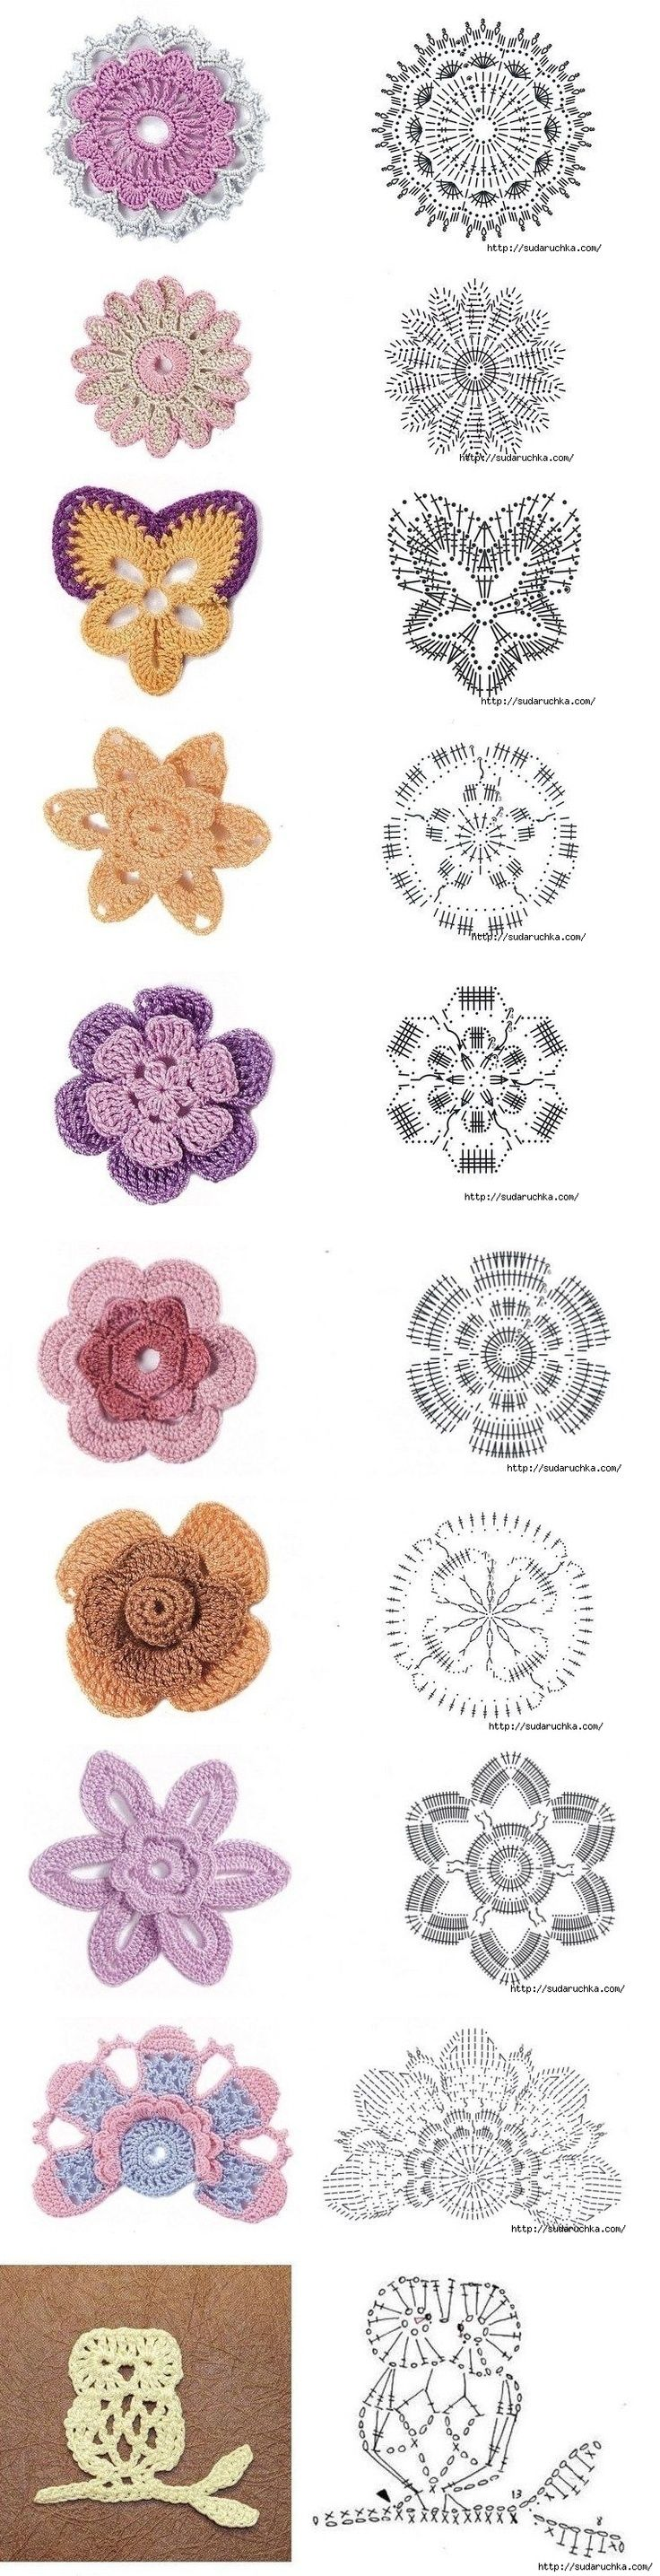 156 best Palo images on Pinterest | Knit crochet, Ponchos and Knitting